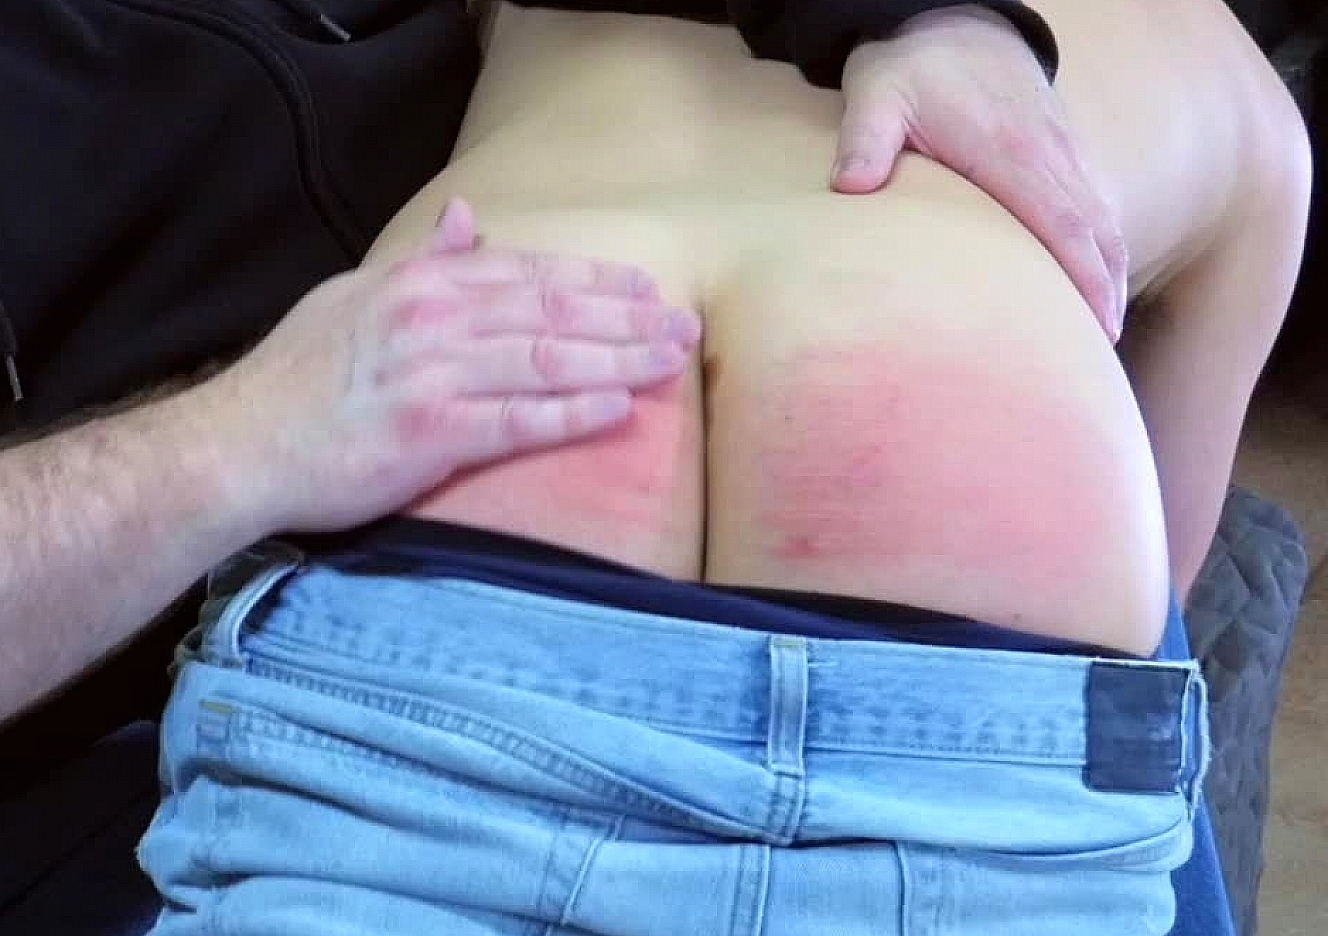 content/180428101-jacobs-first-spanking/0.jpg